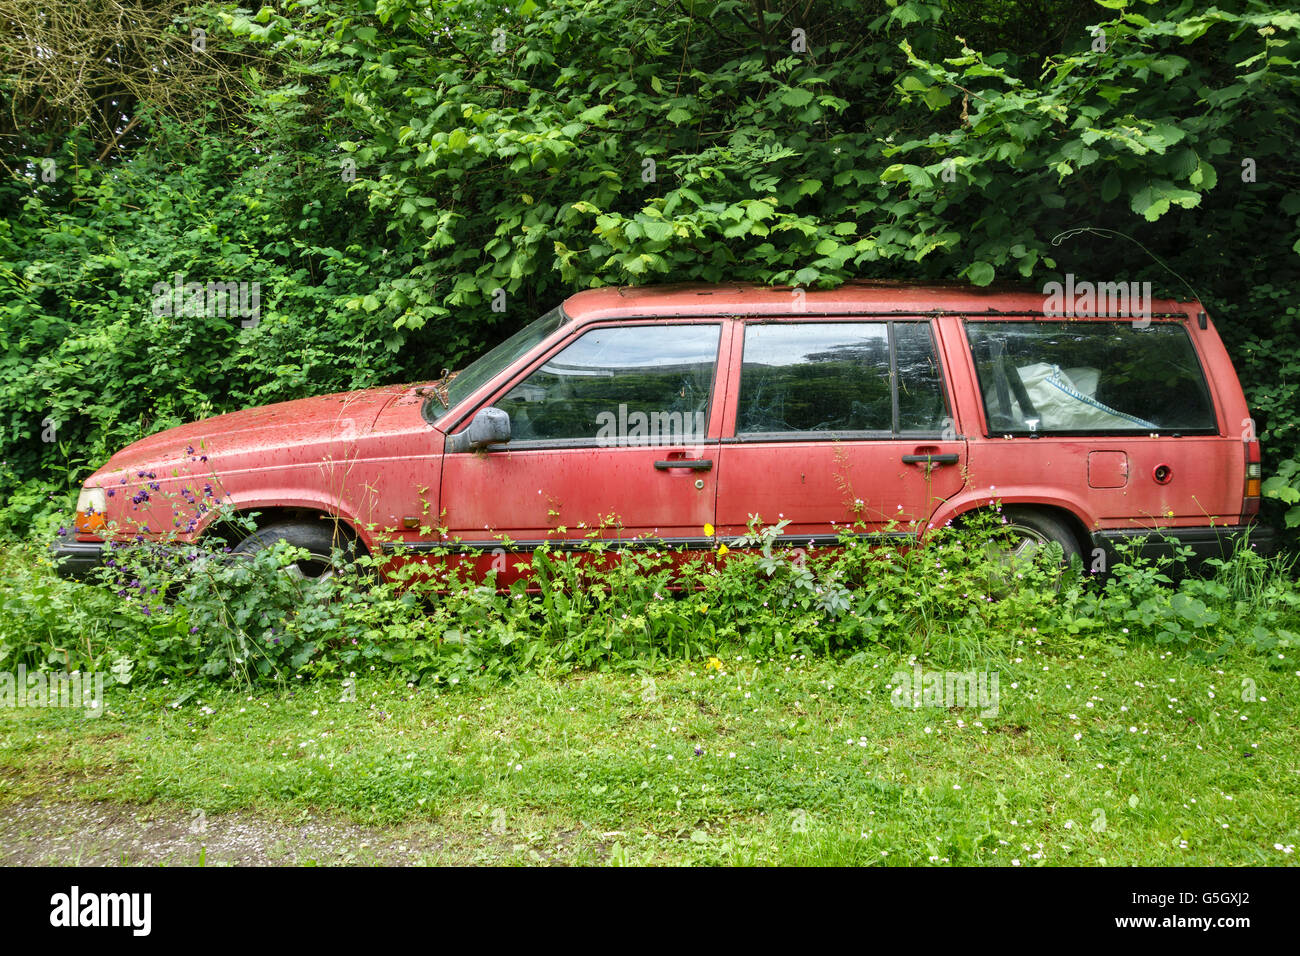 Wales, UK. Weeds growing over an old abandoned red Volvo estate car ...